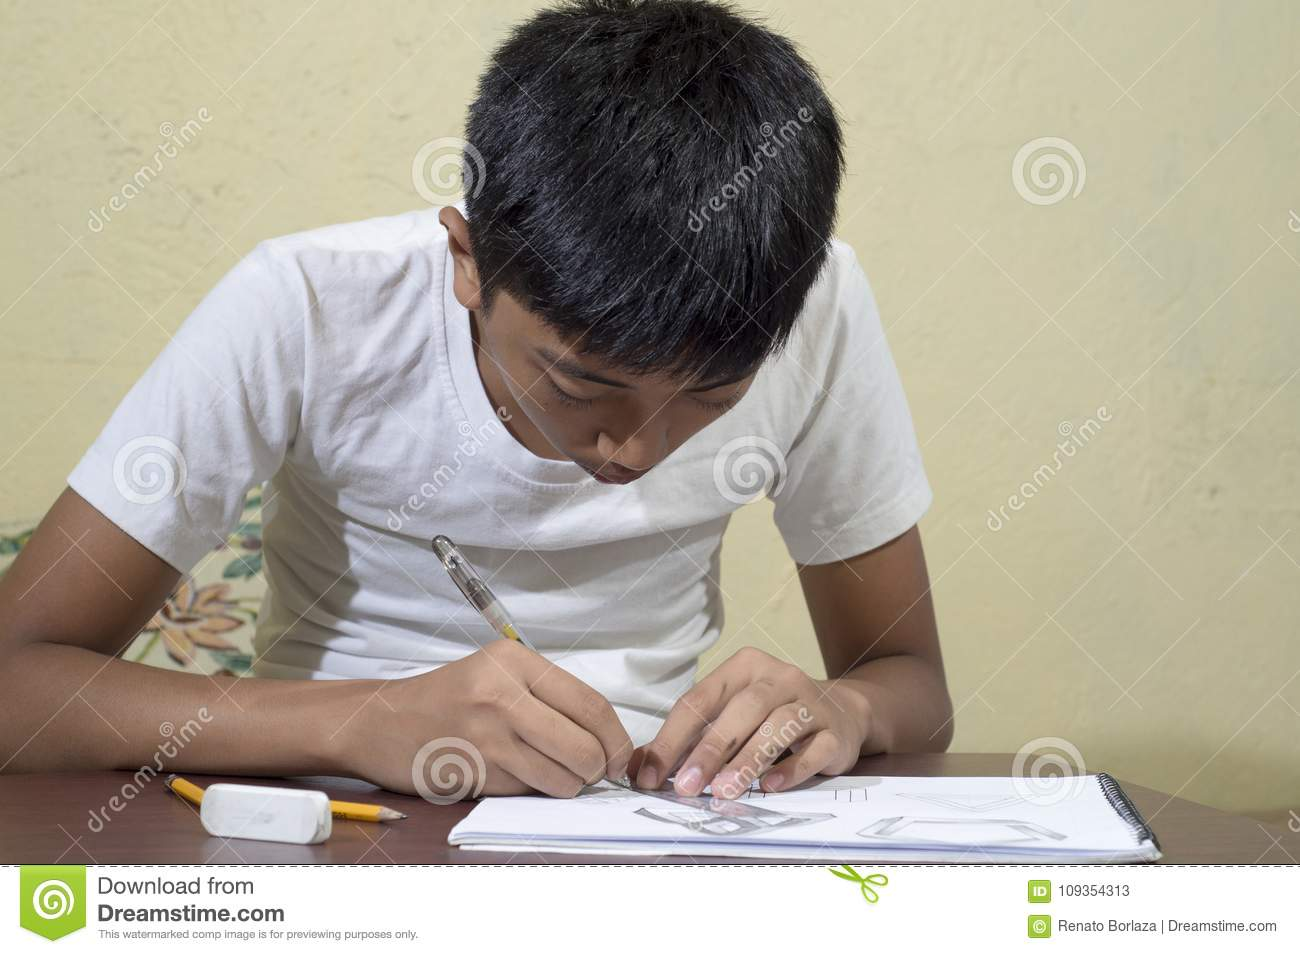 Asian boy learning and practicing to draw 3D shapes on drawing notebook